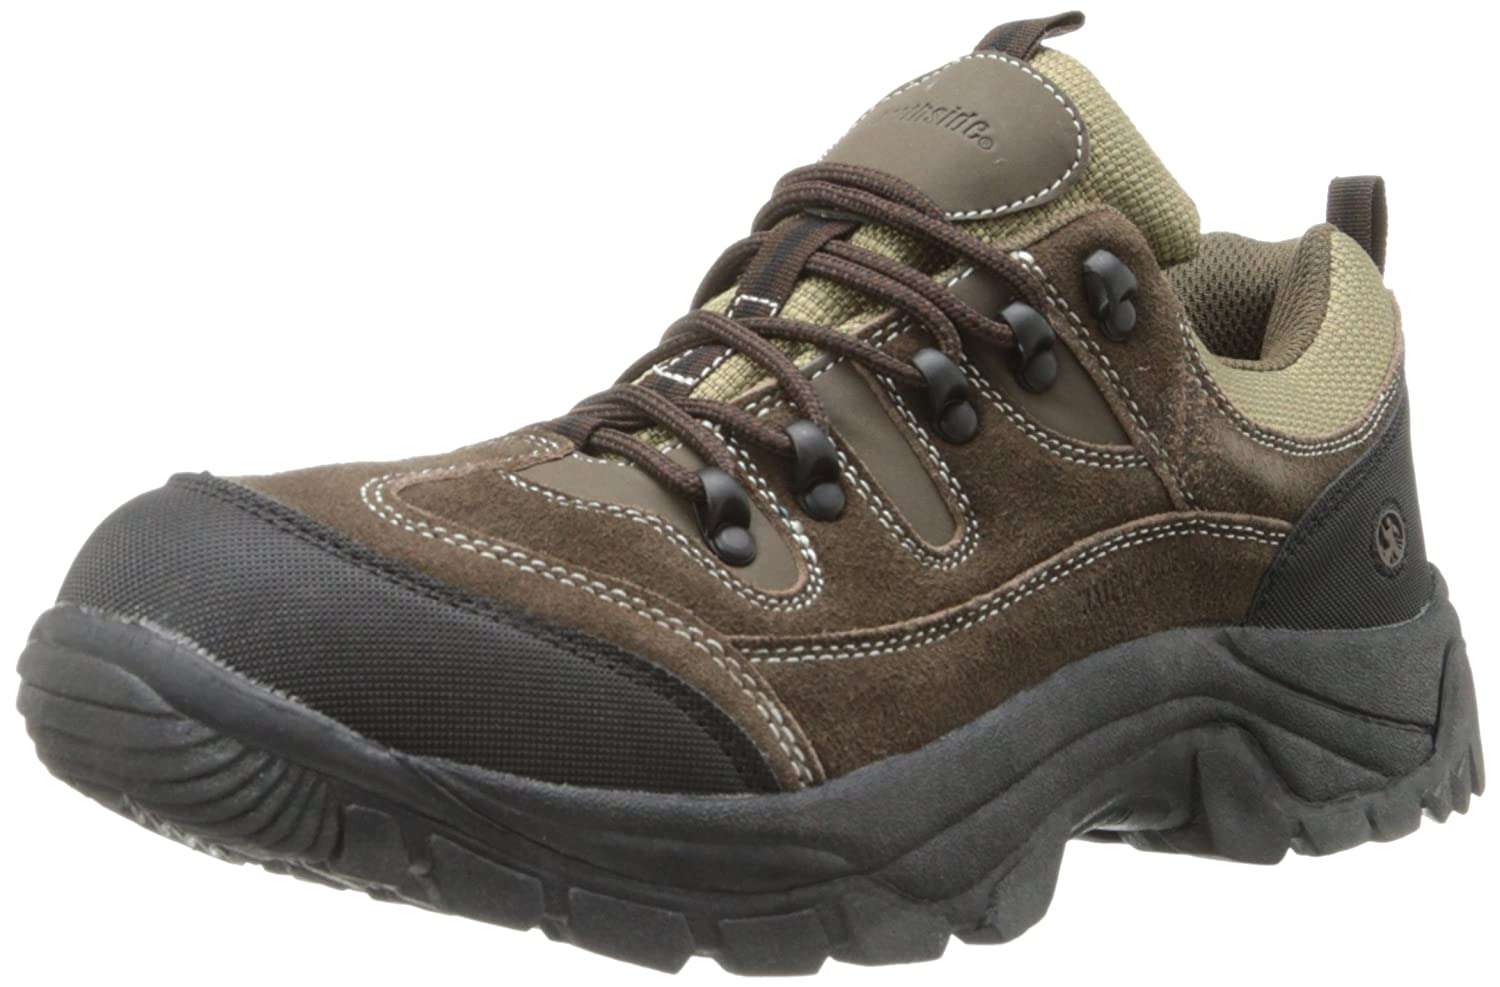 Men's Decatur Hiking Shoe